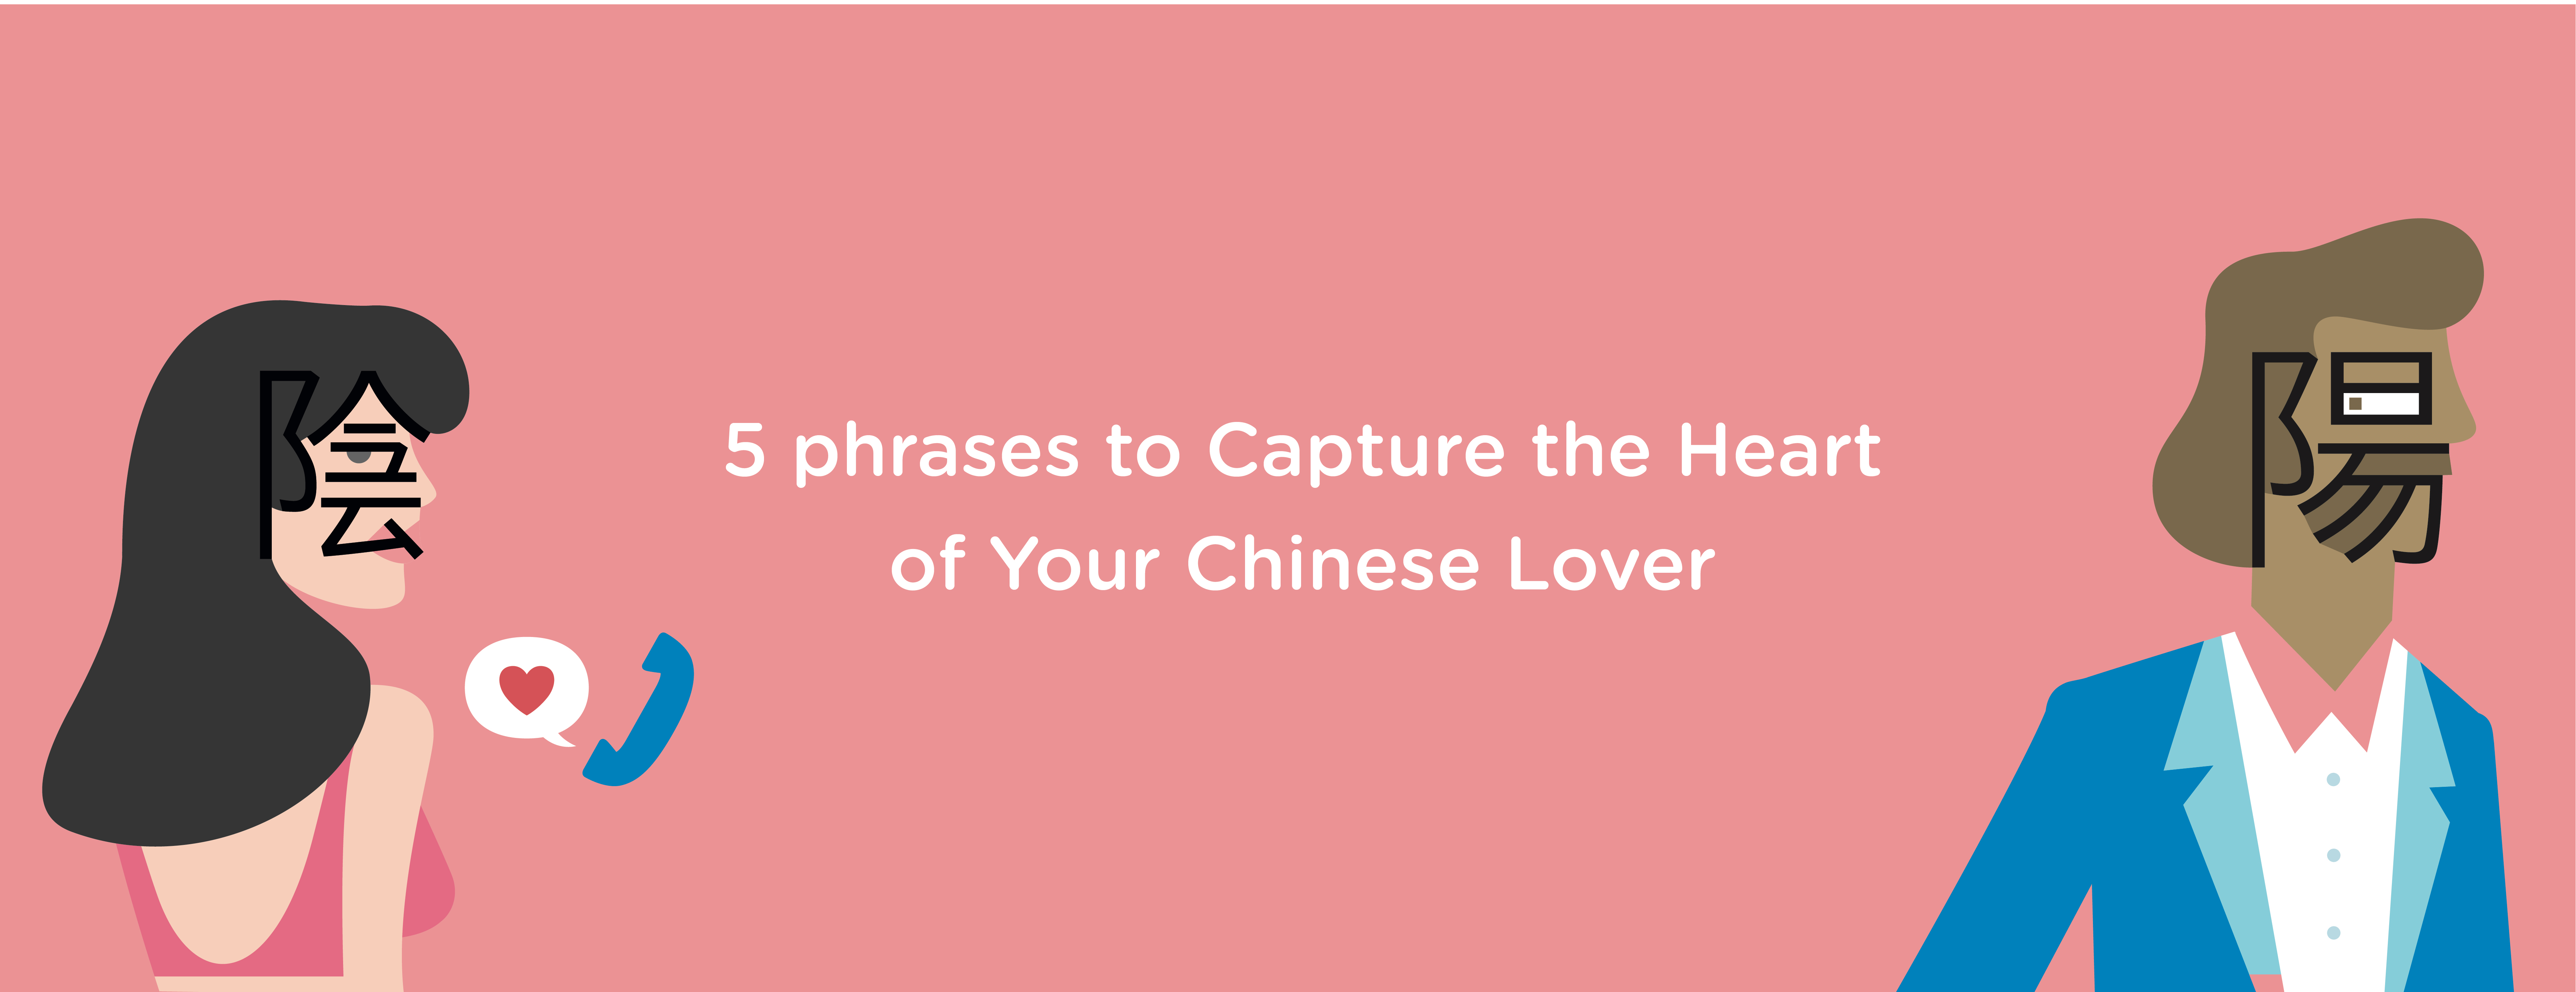 Blog 5 Phrases To Capture The Heart Of Your Chinese Lover Chineasy